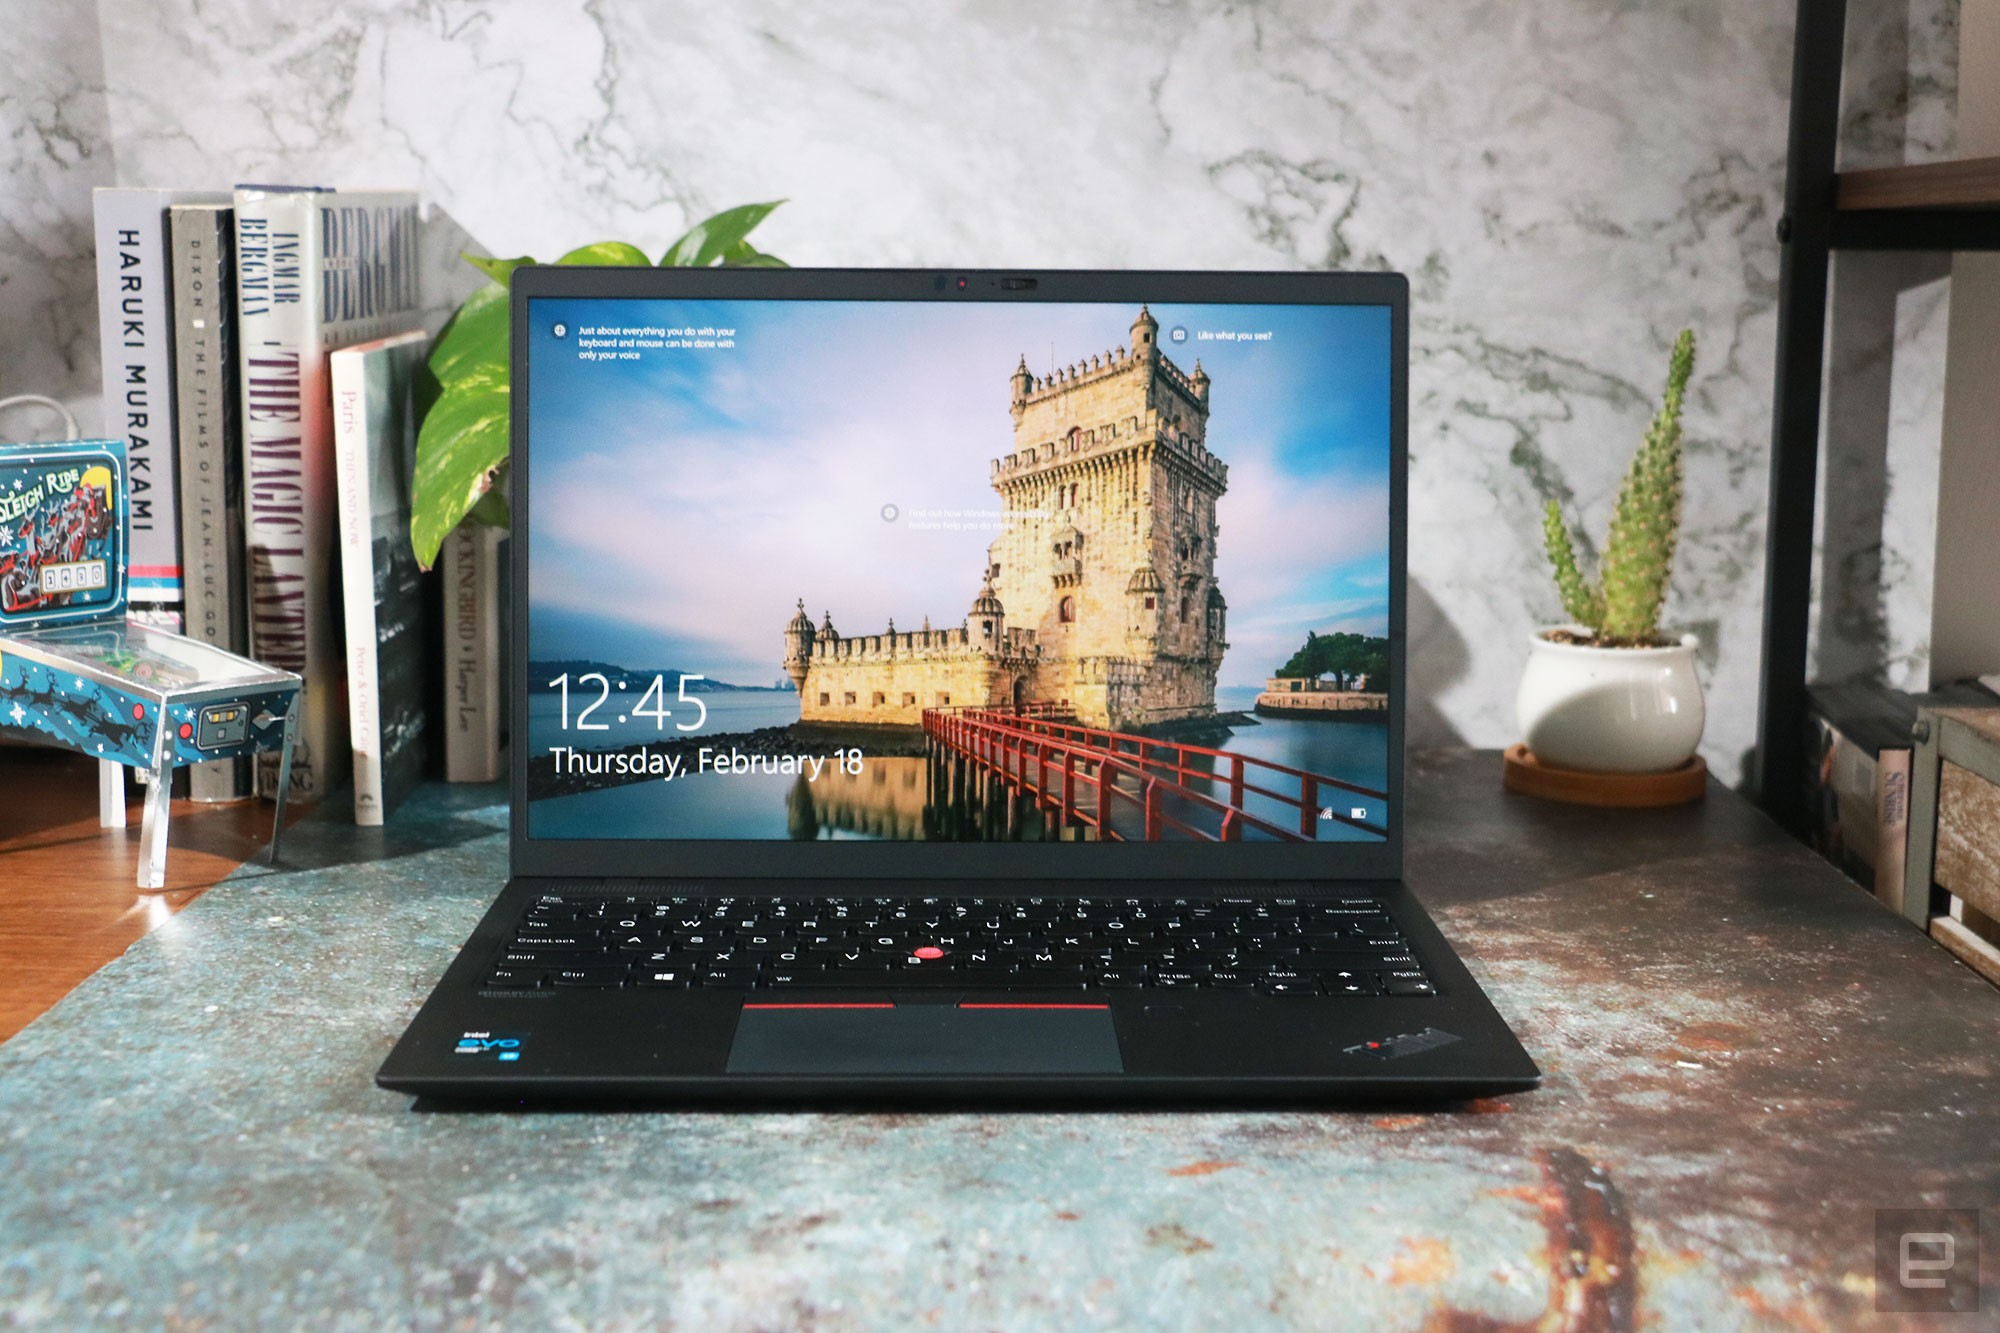 ThinkPad X1 Nano review: Light and mighty but doesn't last